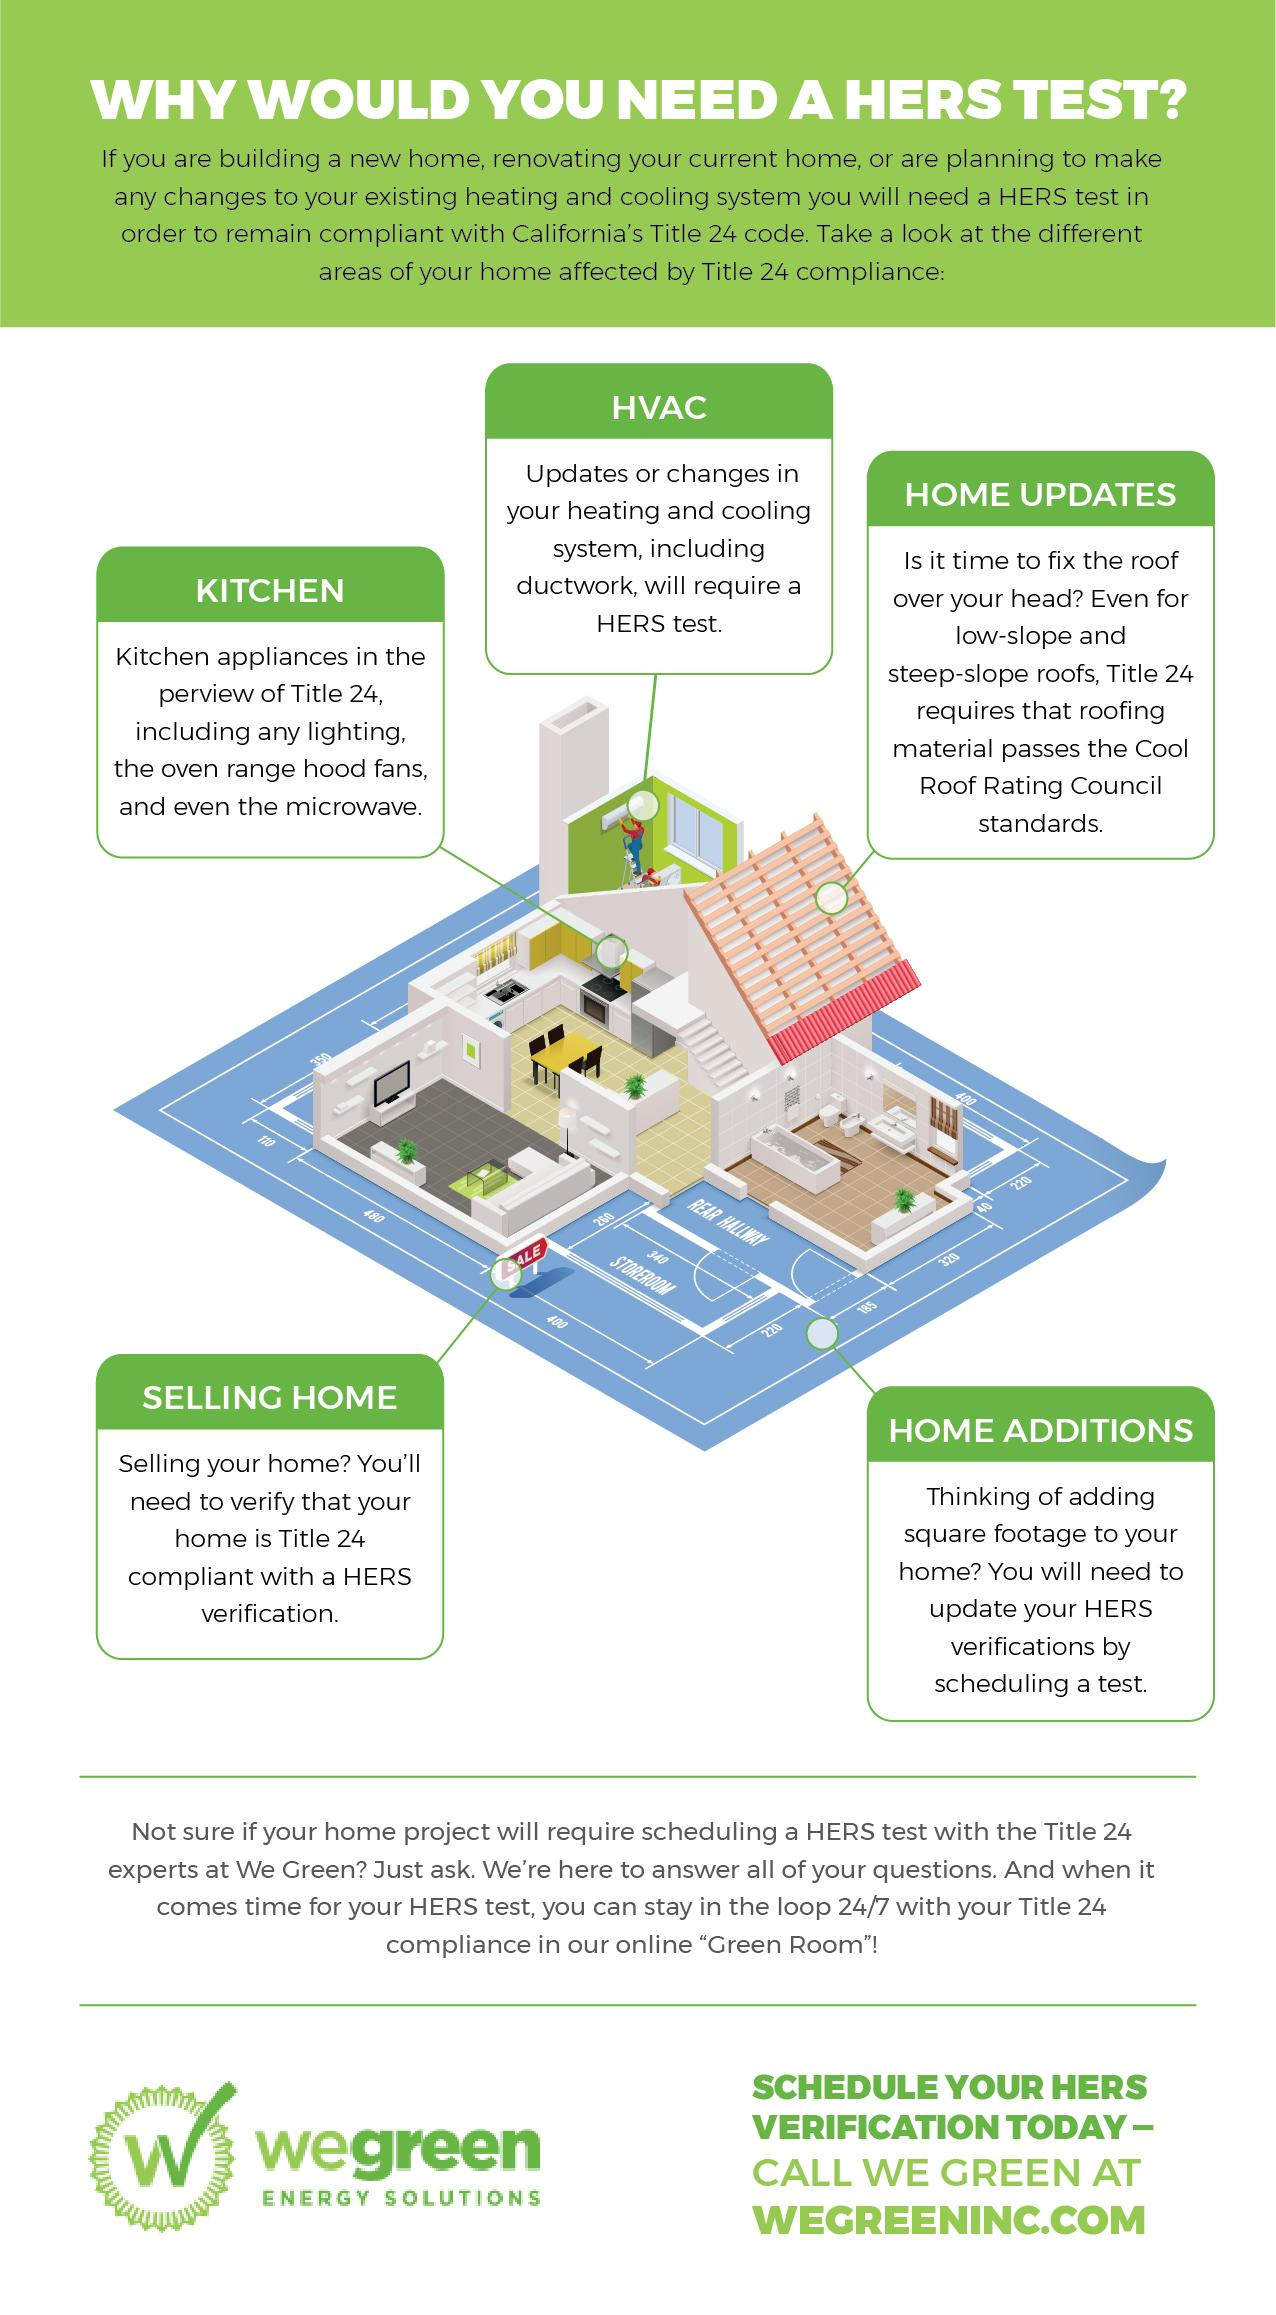 hers test we green infographic